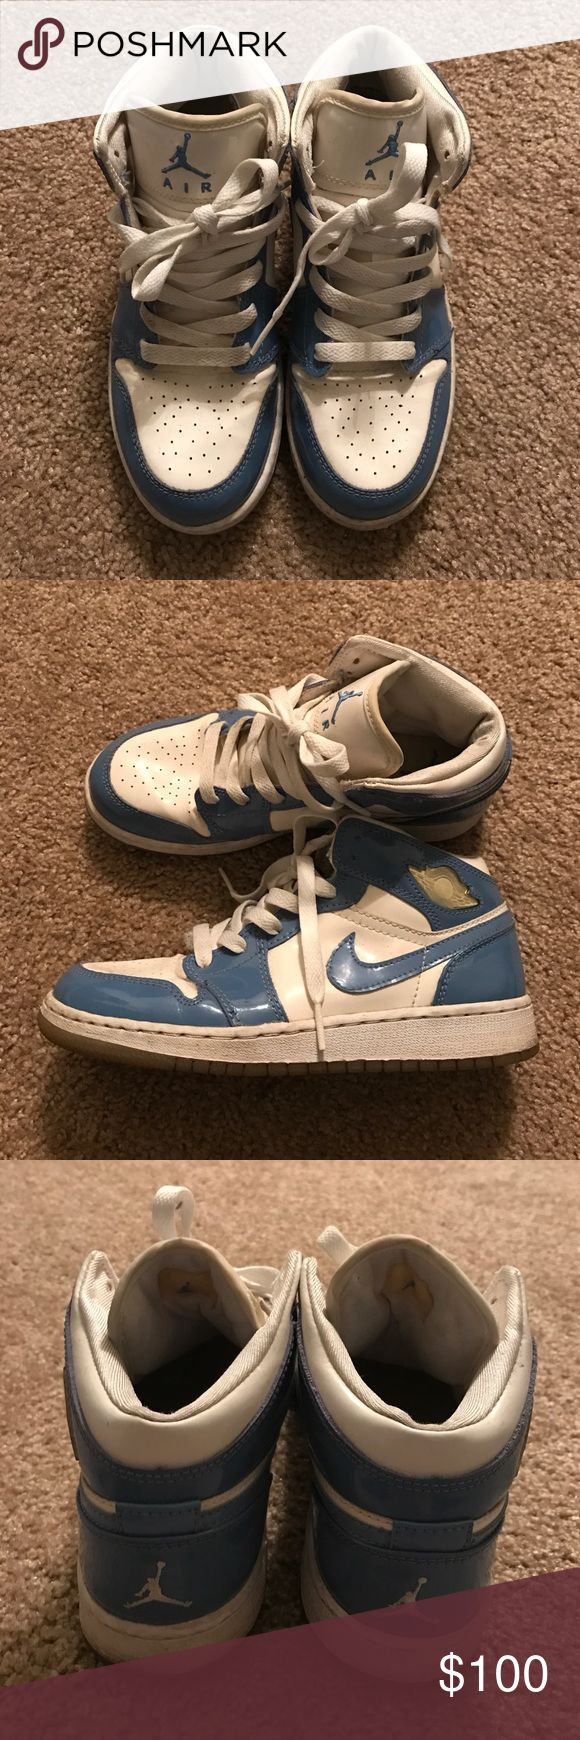 Jordan Retro 1 Patent Leather Carolina UK 36.5 Had these since they released in 2003. Last time Worn was 5 years ago. Jordan Shoes Sneakers